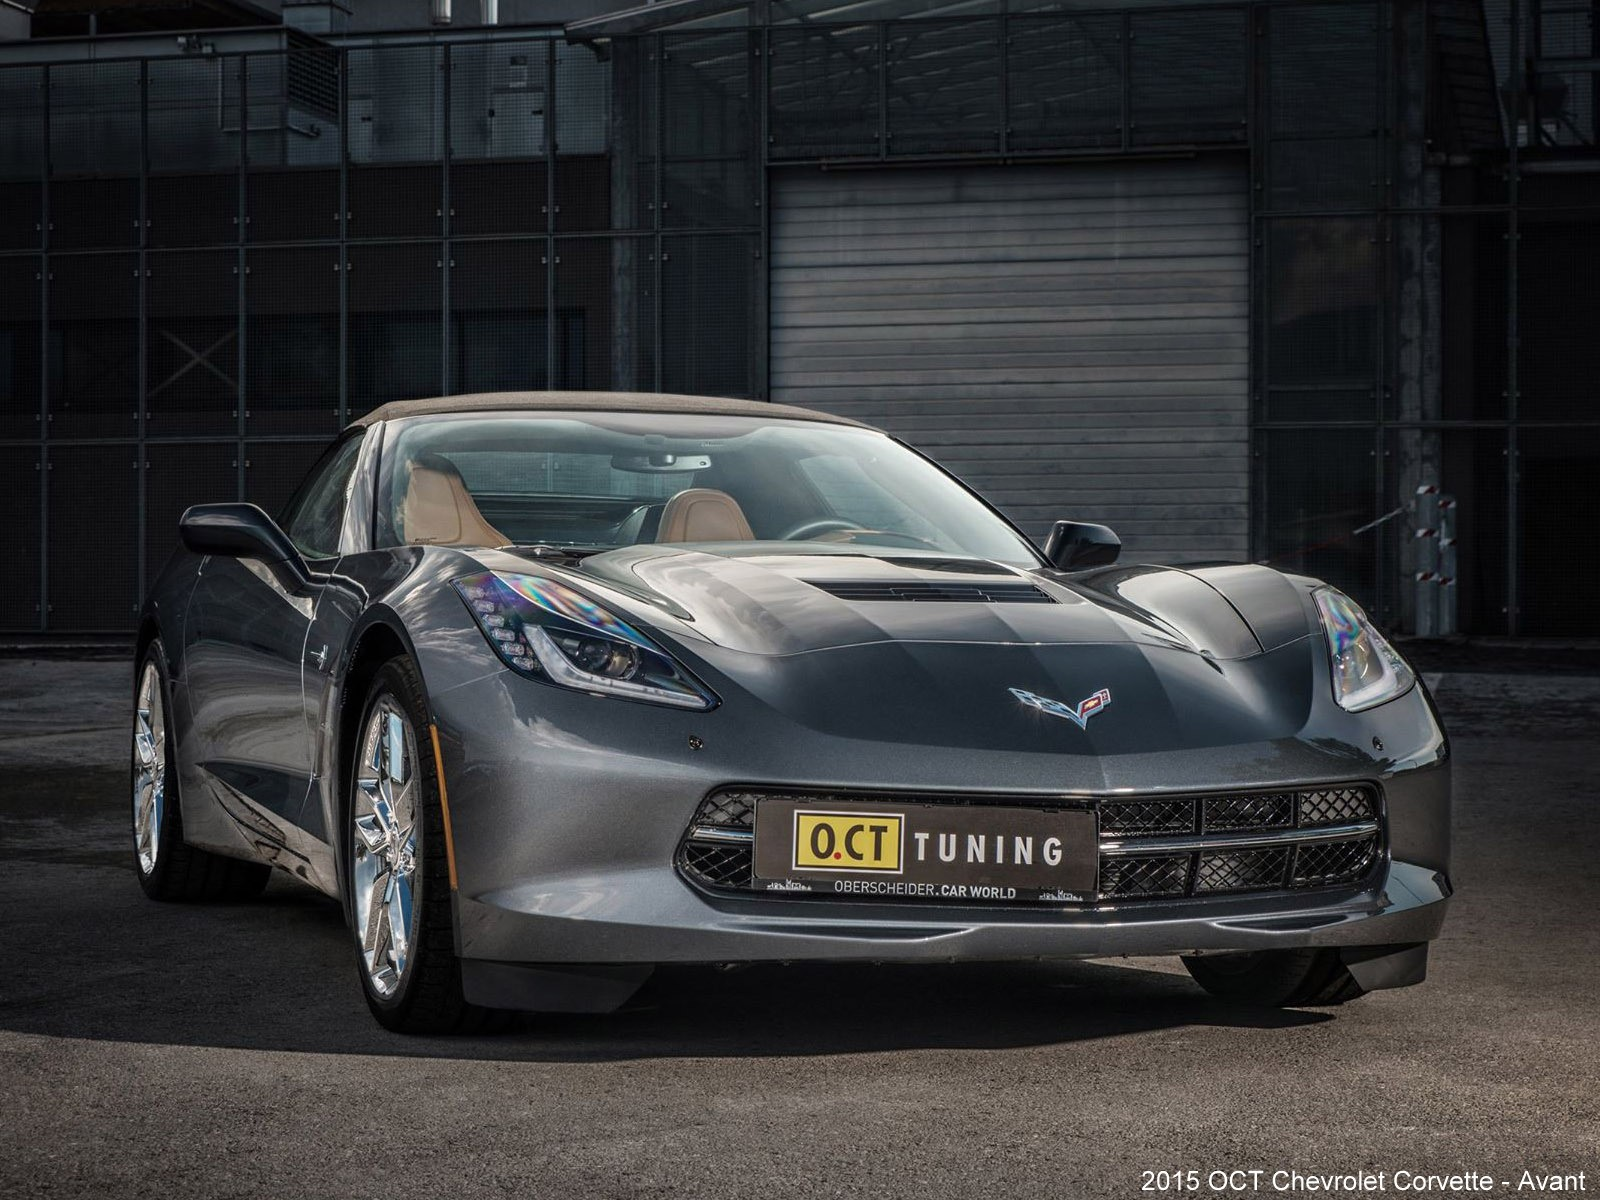 2015 Chevrolet Corvette - oct-tuning